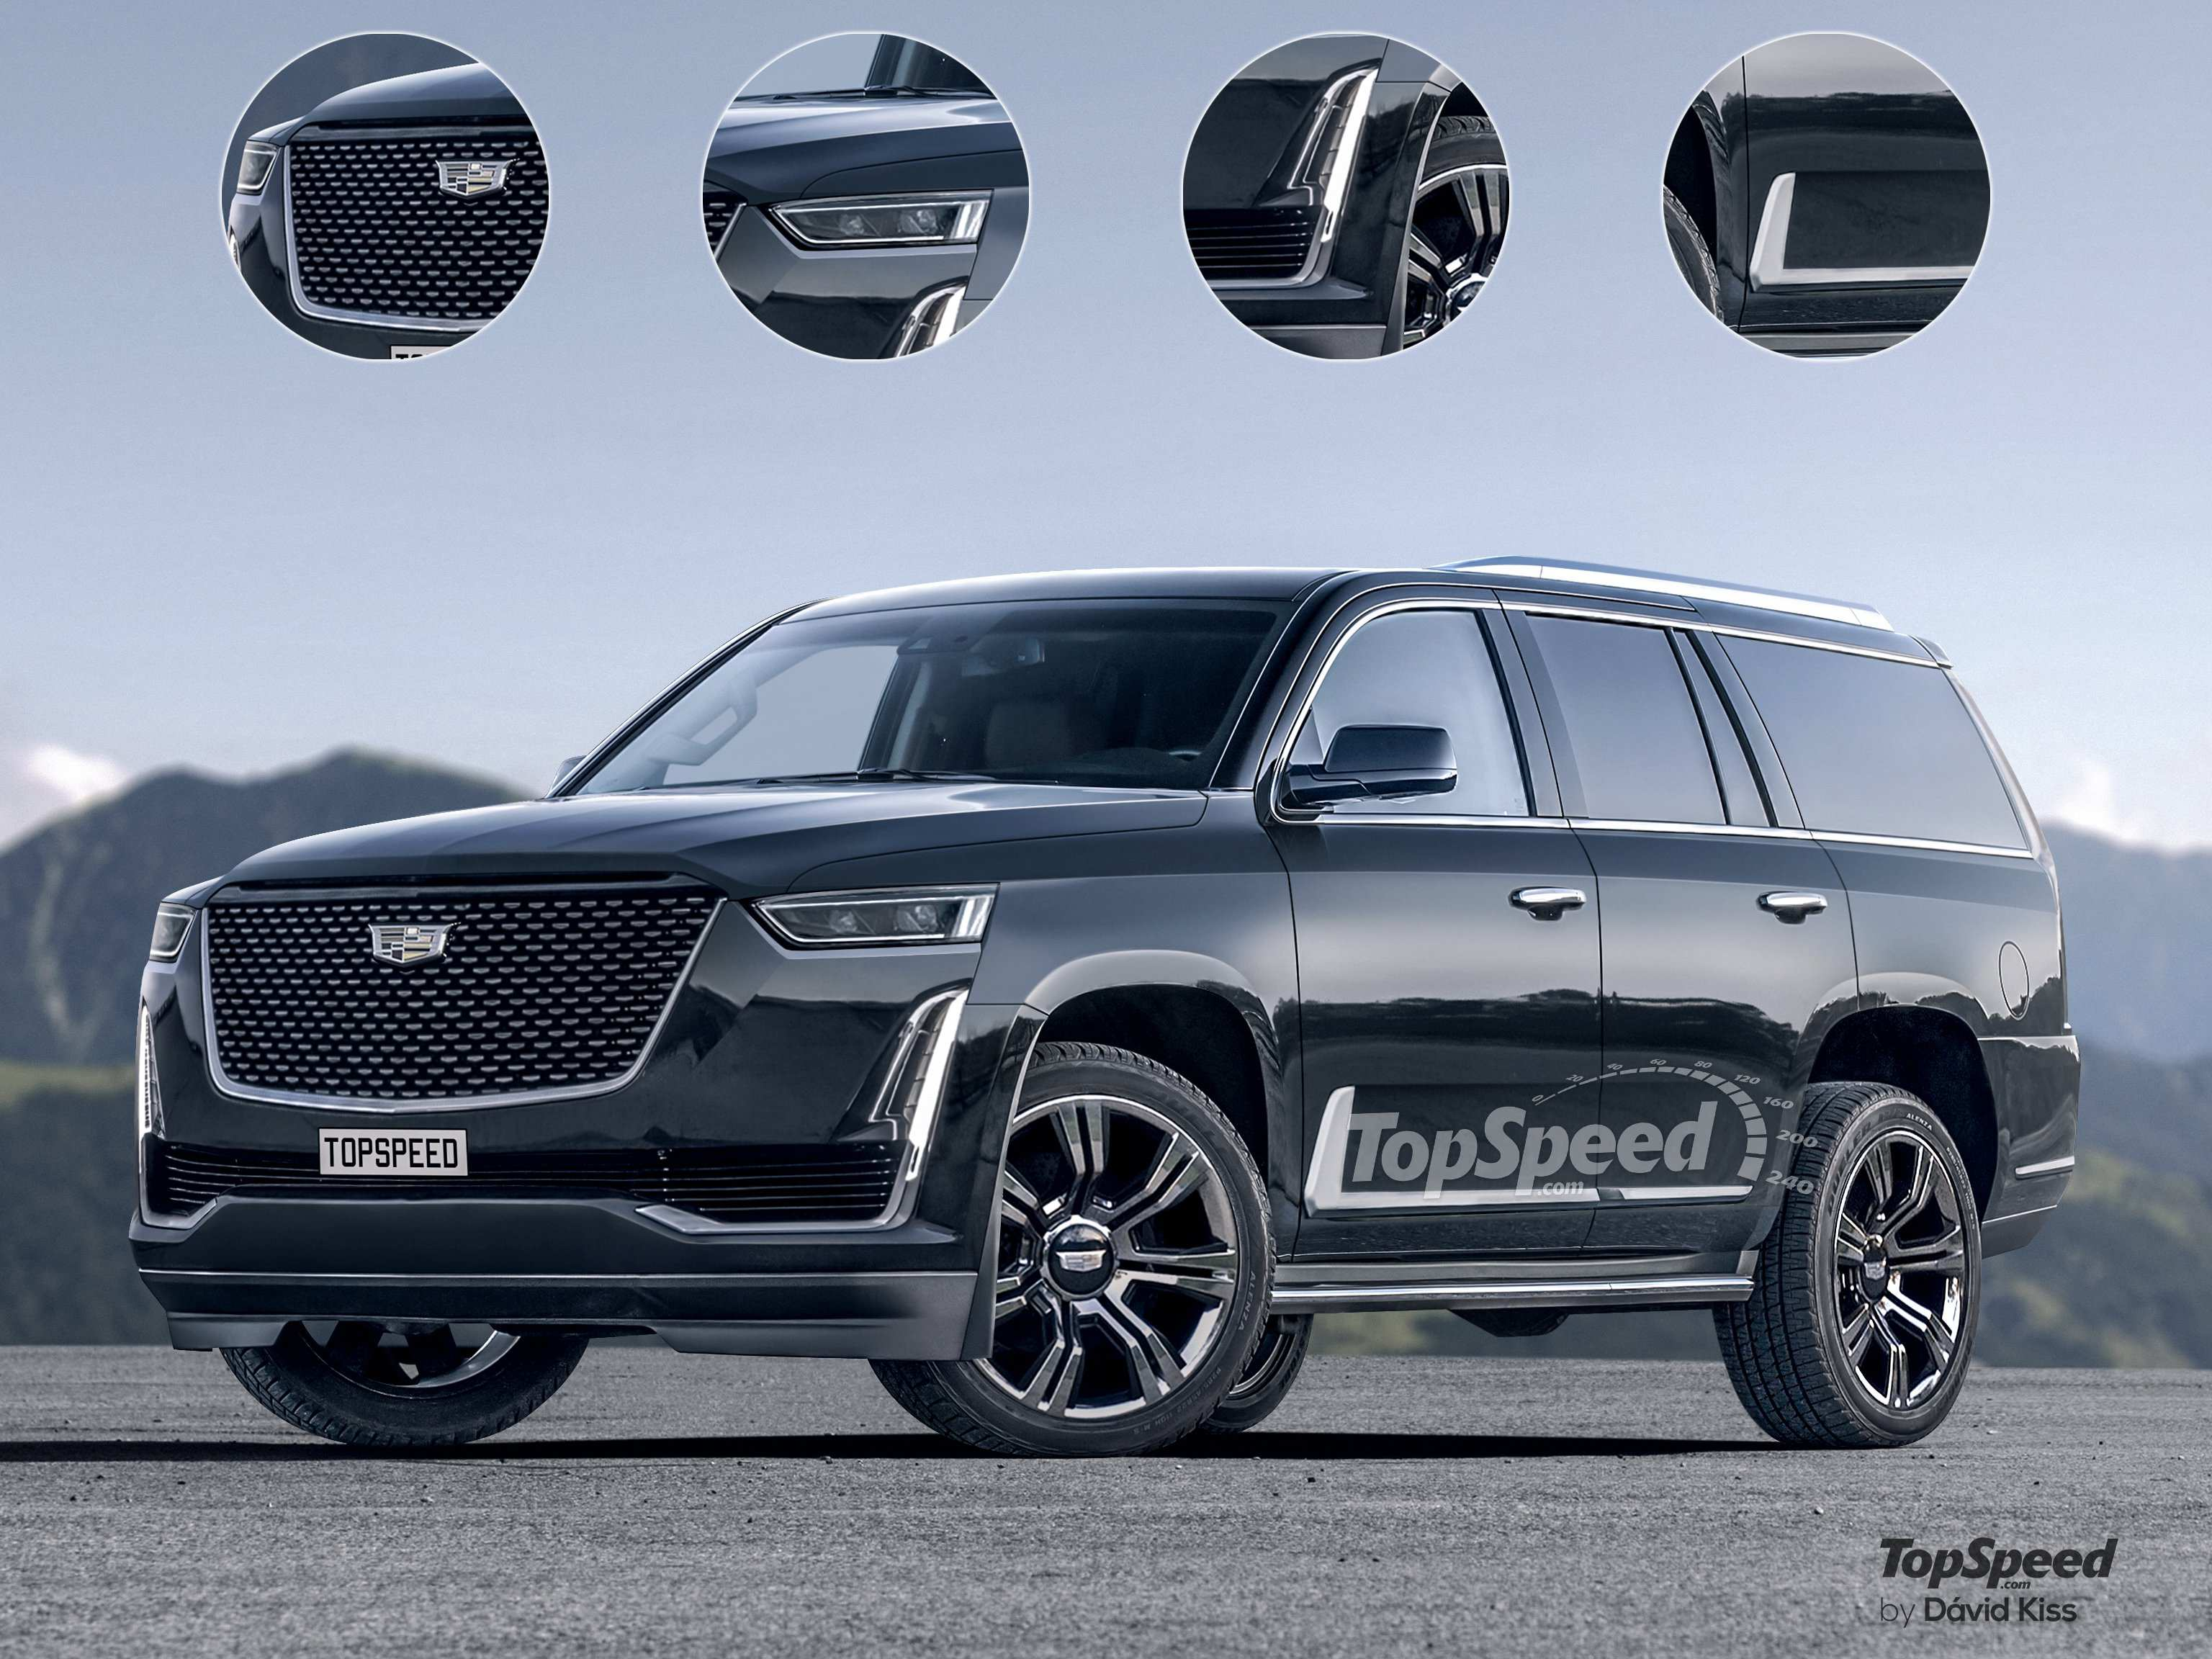 62 All New Cadillac Escalade 2020 Release Date Images by Cadillac Escalade 2020 Release Date